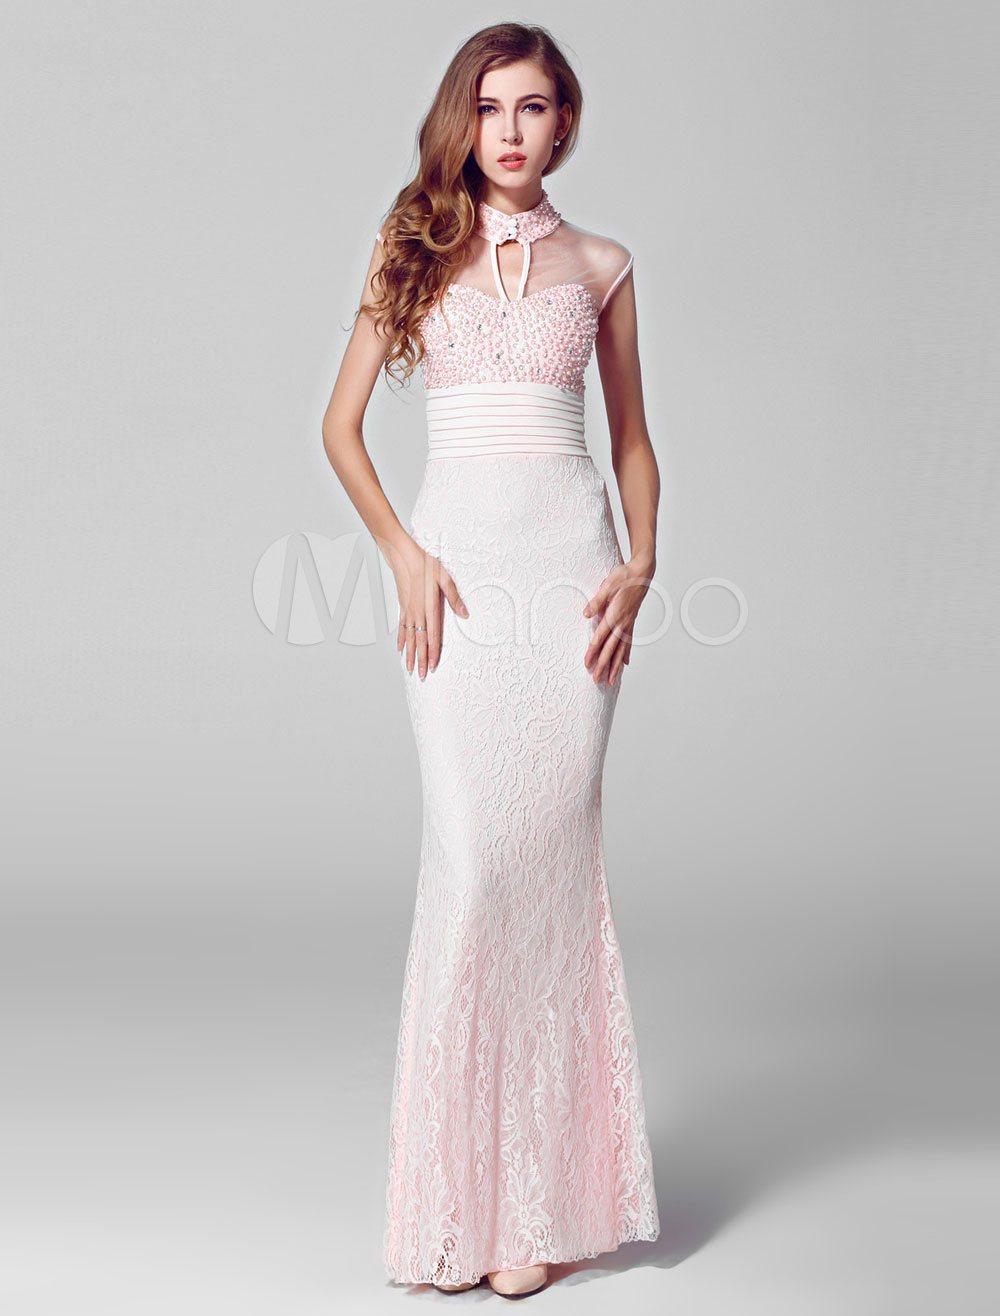 Pink Pearl Beaded Illusion Keyhole Neckline Lace Prom Dress with Bow at Back